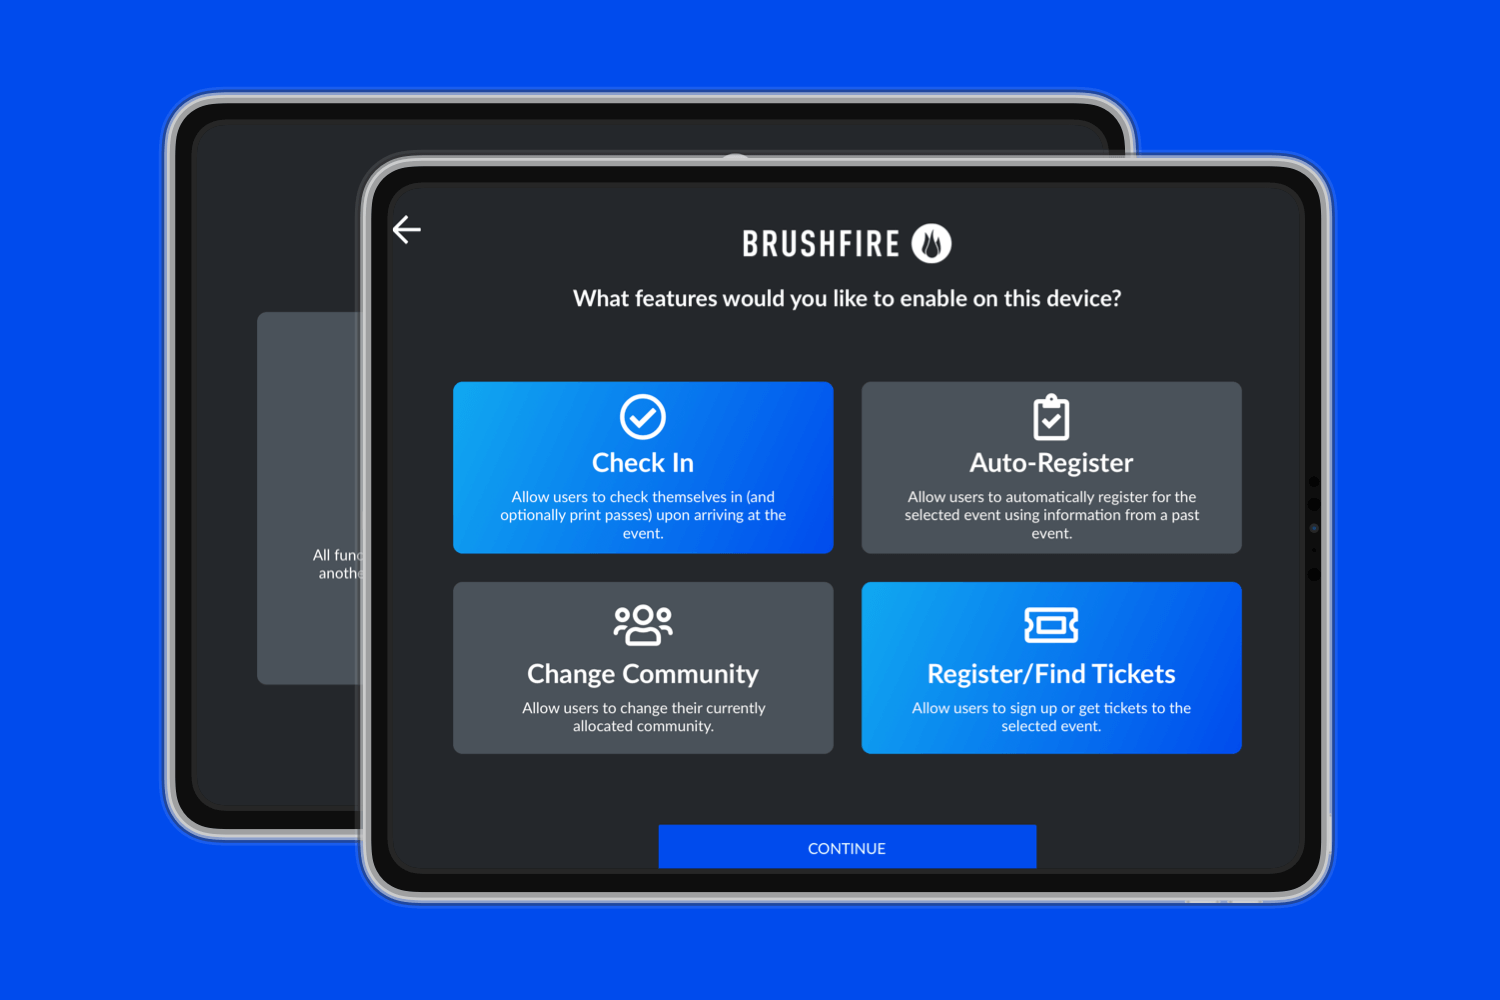 Fully control your event from the Brushfire iPad or turn it into a self-service kiosk for your event.